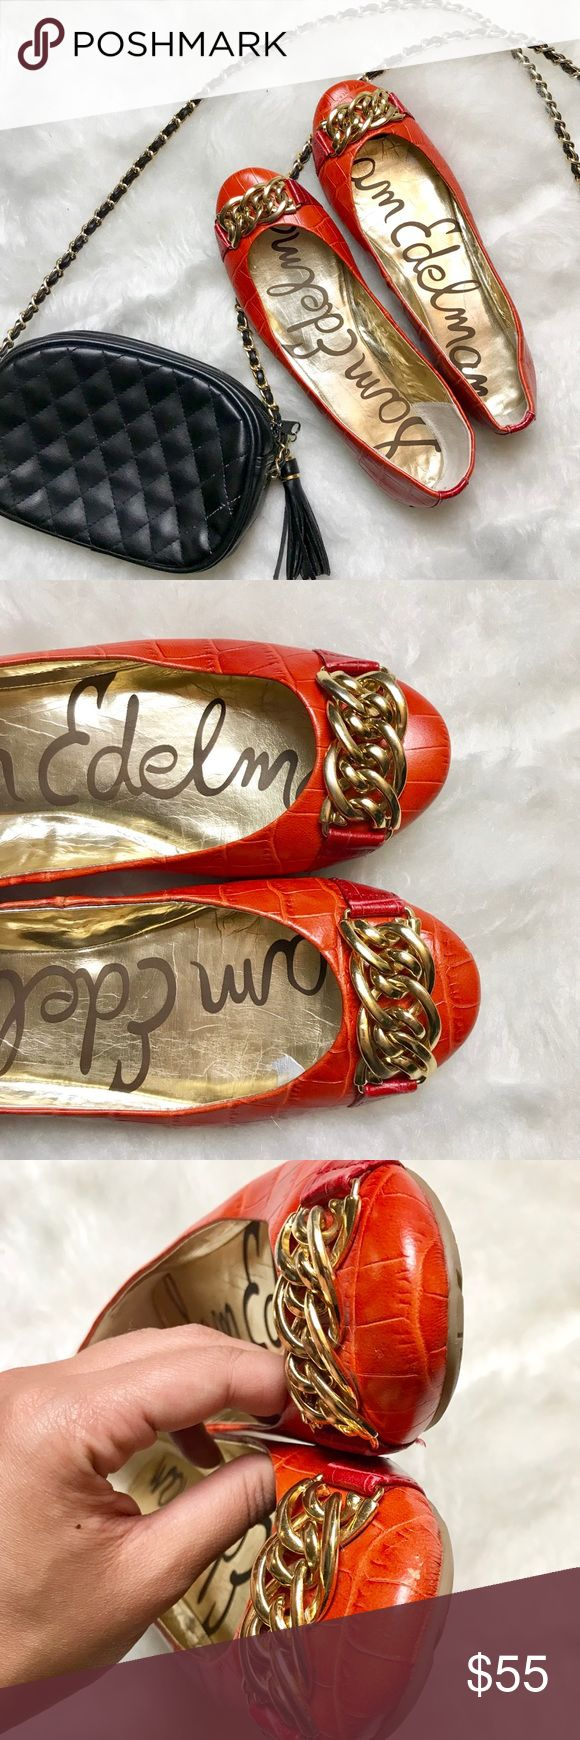 Sam Edelman Orange Leather Ballet Flats Size 8 Eye catching chic orange leather ballet flats by Sam Edelman with gold chain detail on front of shoes. Small blemish on one shoe noted in photos but hardly noticeable, shoes are in great condition. Perfect fall color! Women's size 8. Sam Edelman Shoes Flats & Loafers